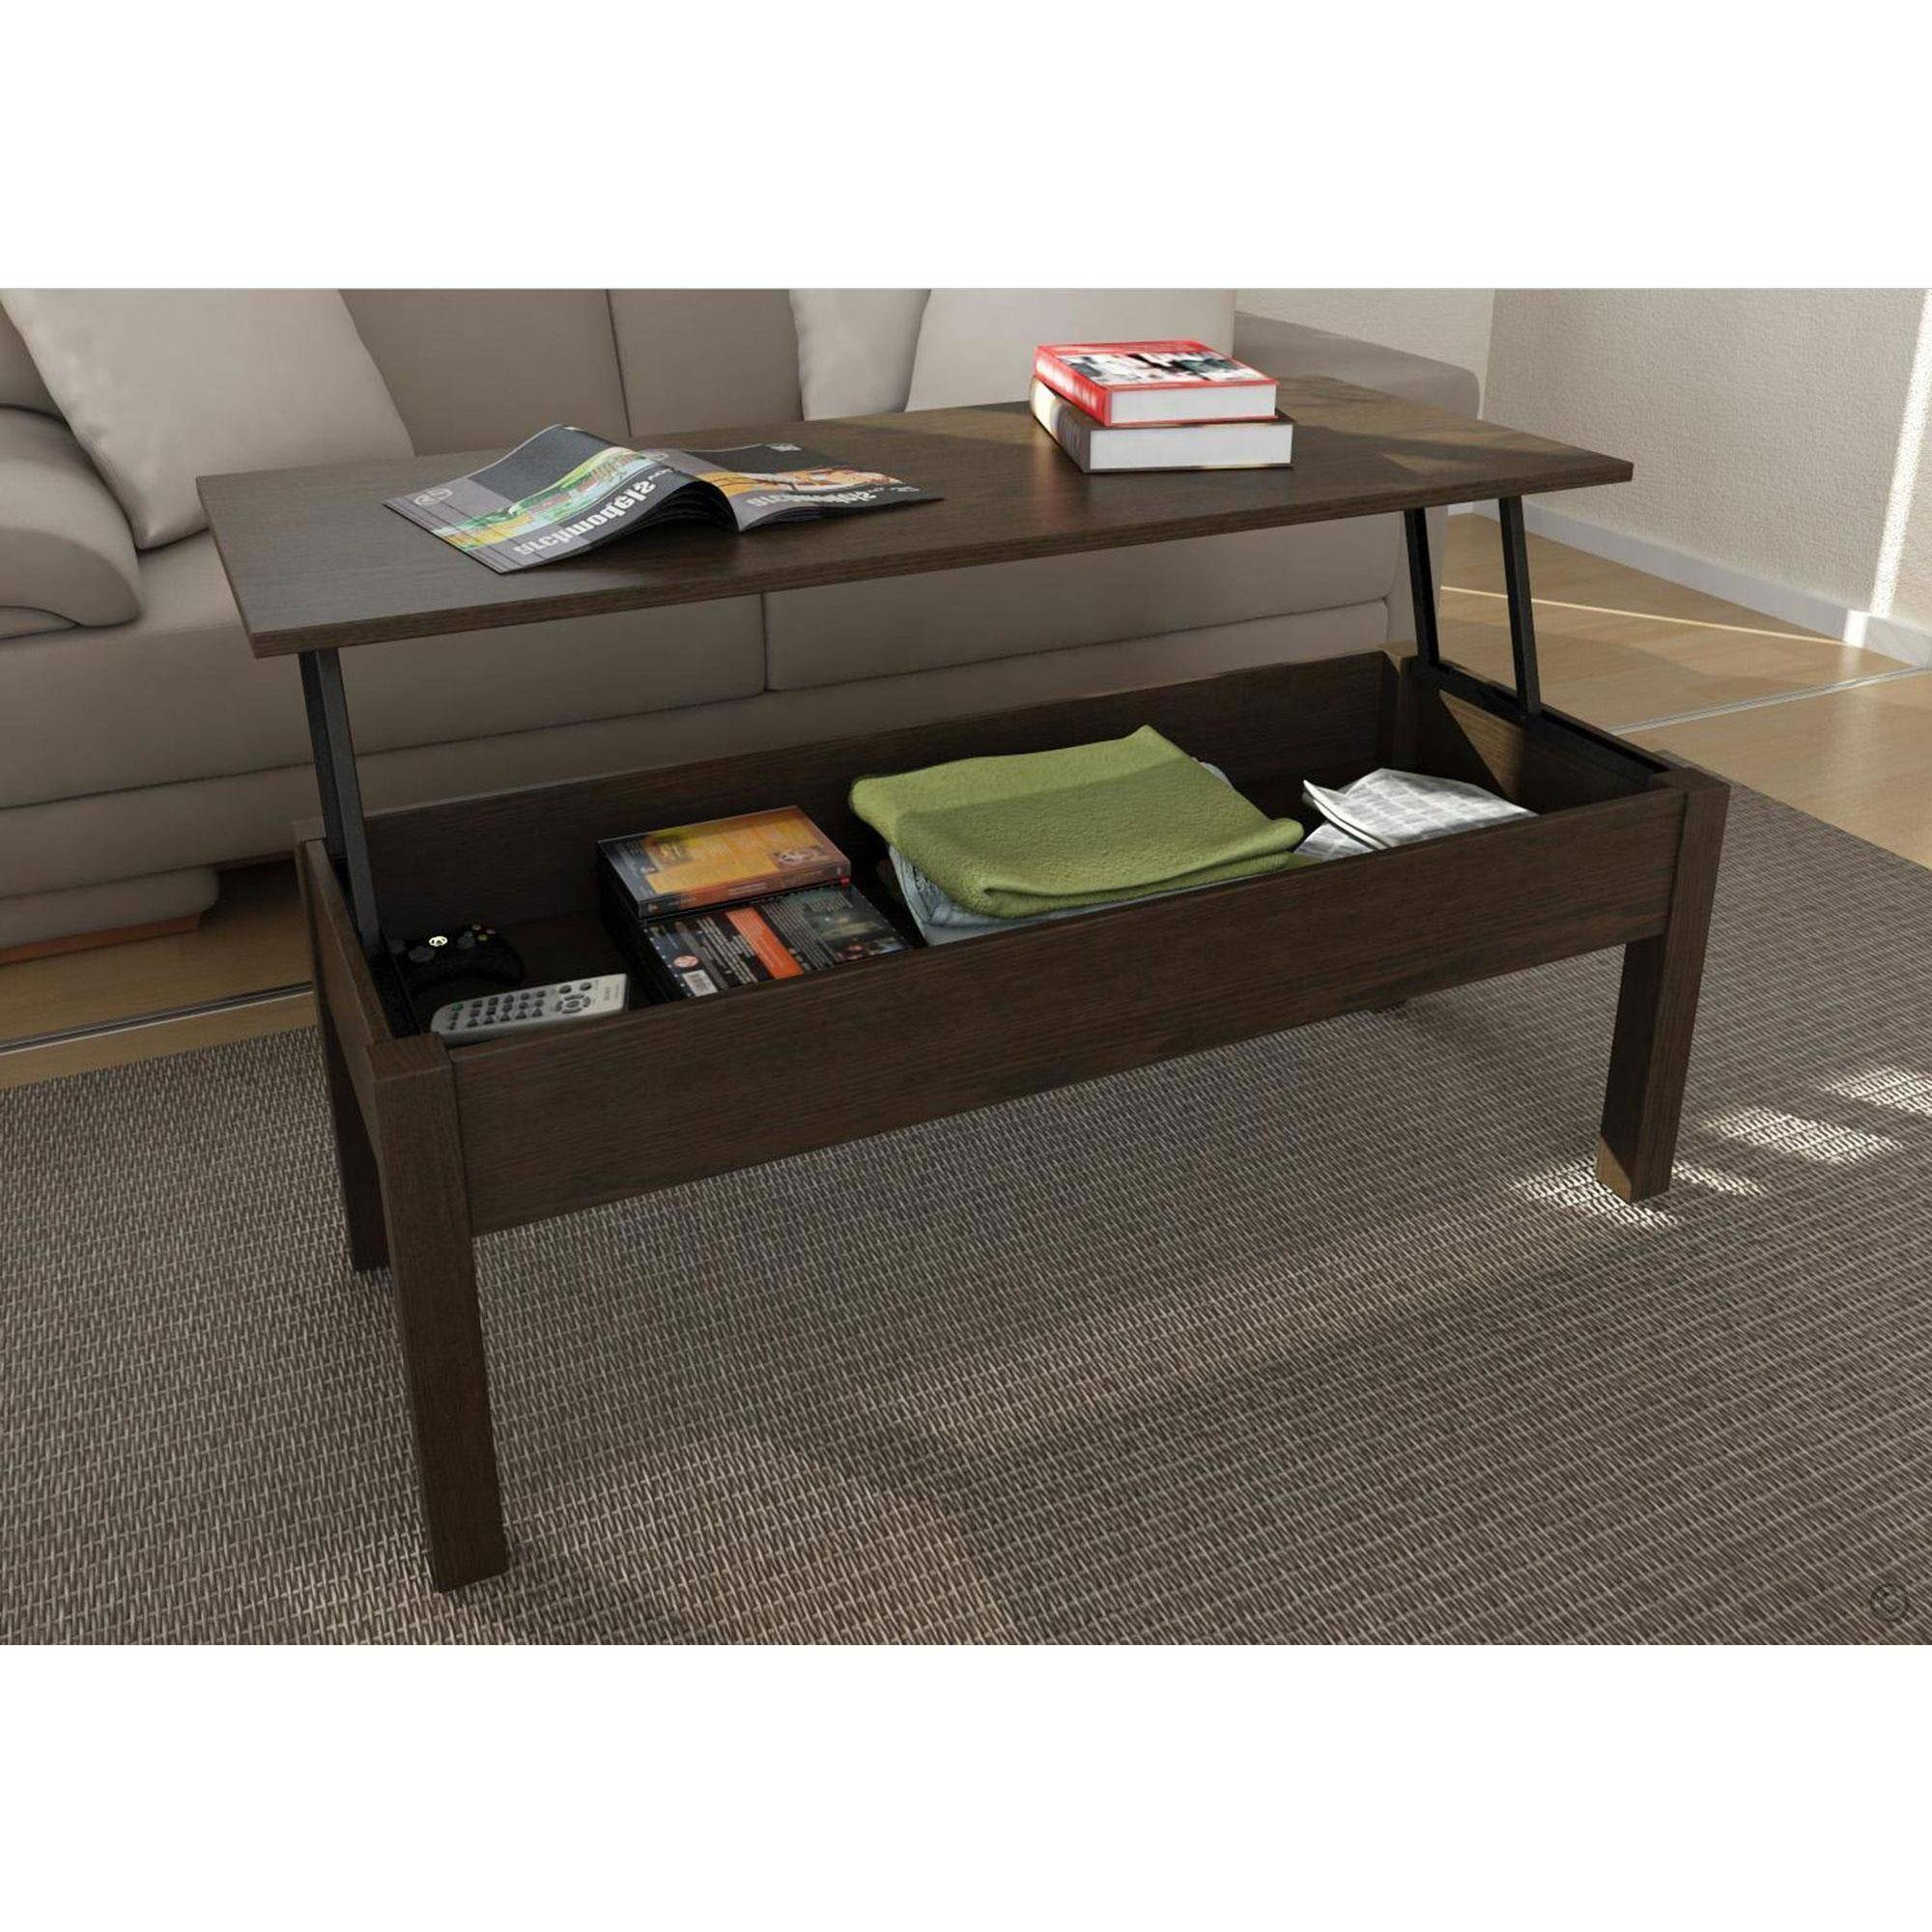 Mainstays Lift-Top Coffee Table, Multiple Colors - Walmart for Top Lift Coffee Tables (Image 17 of 30)